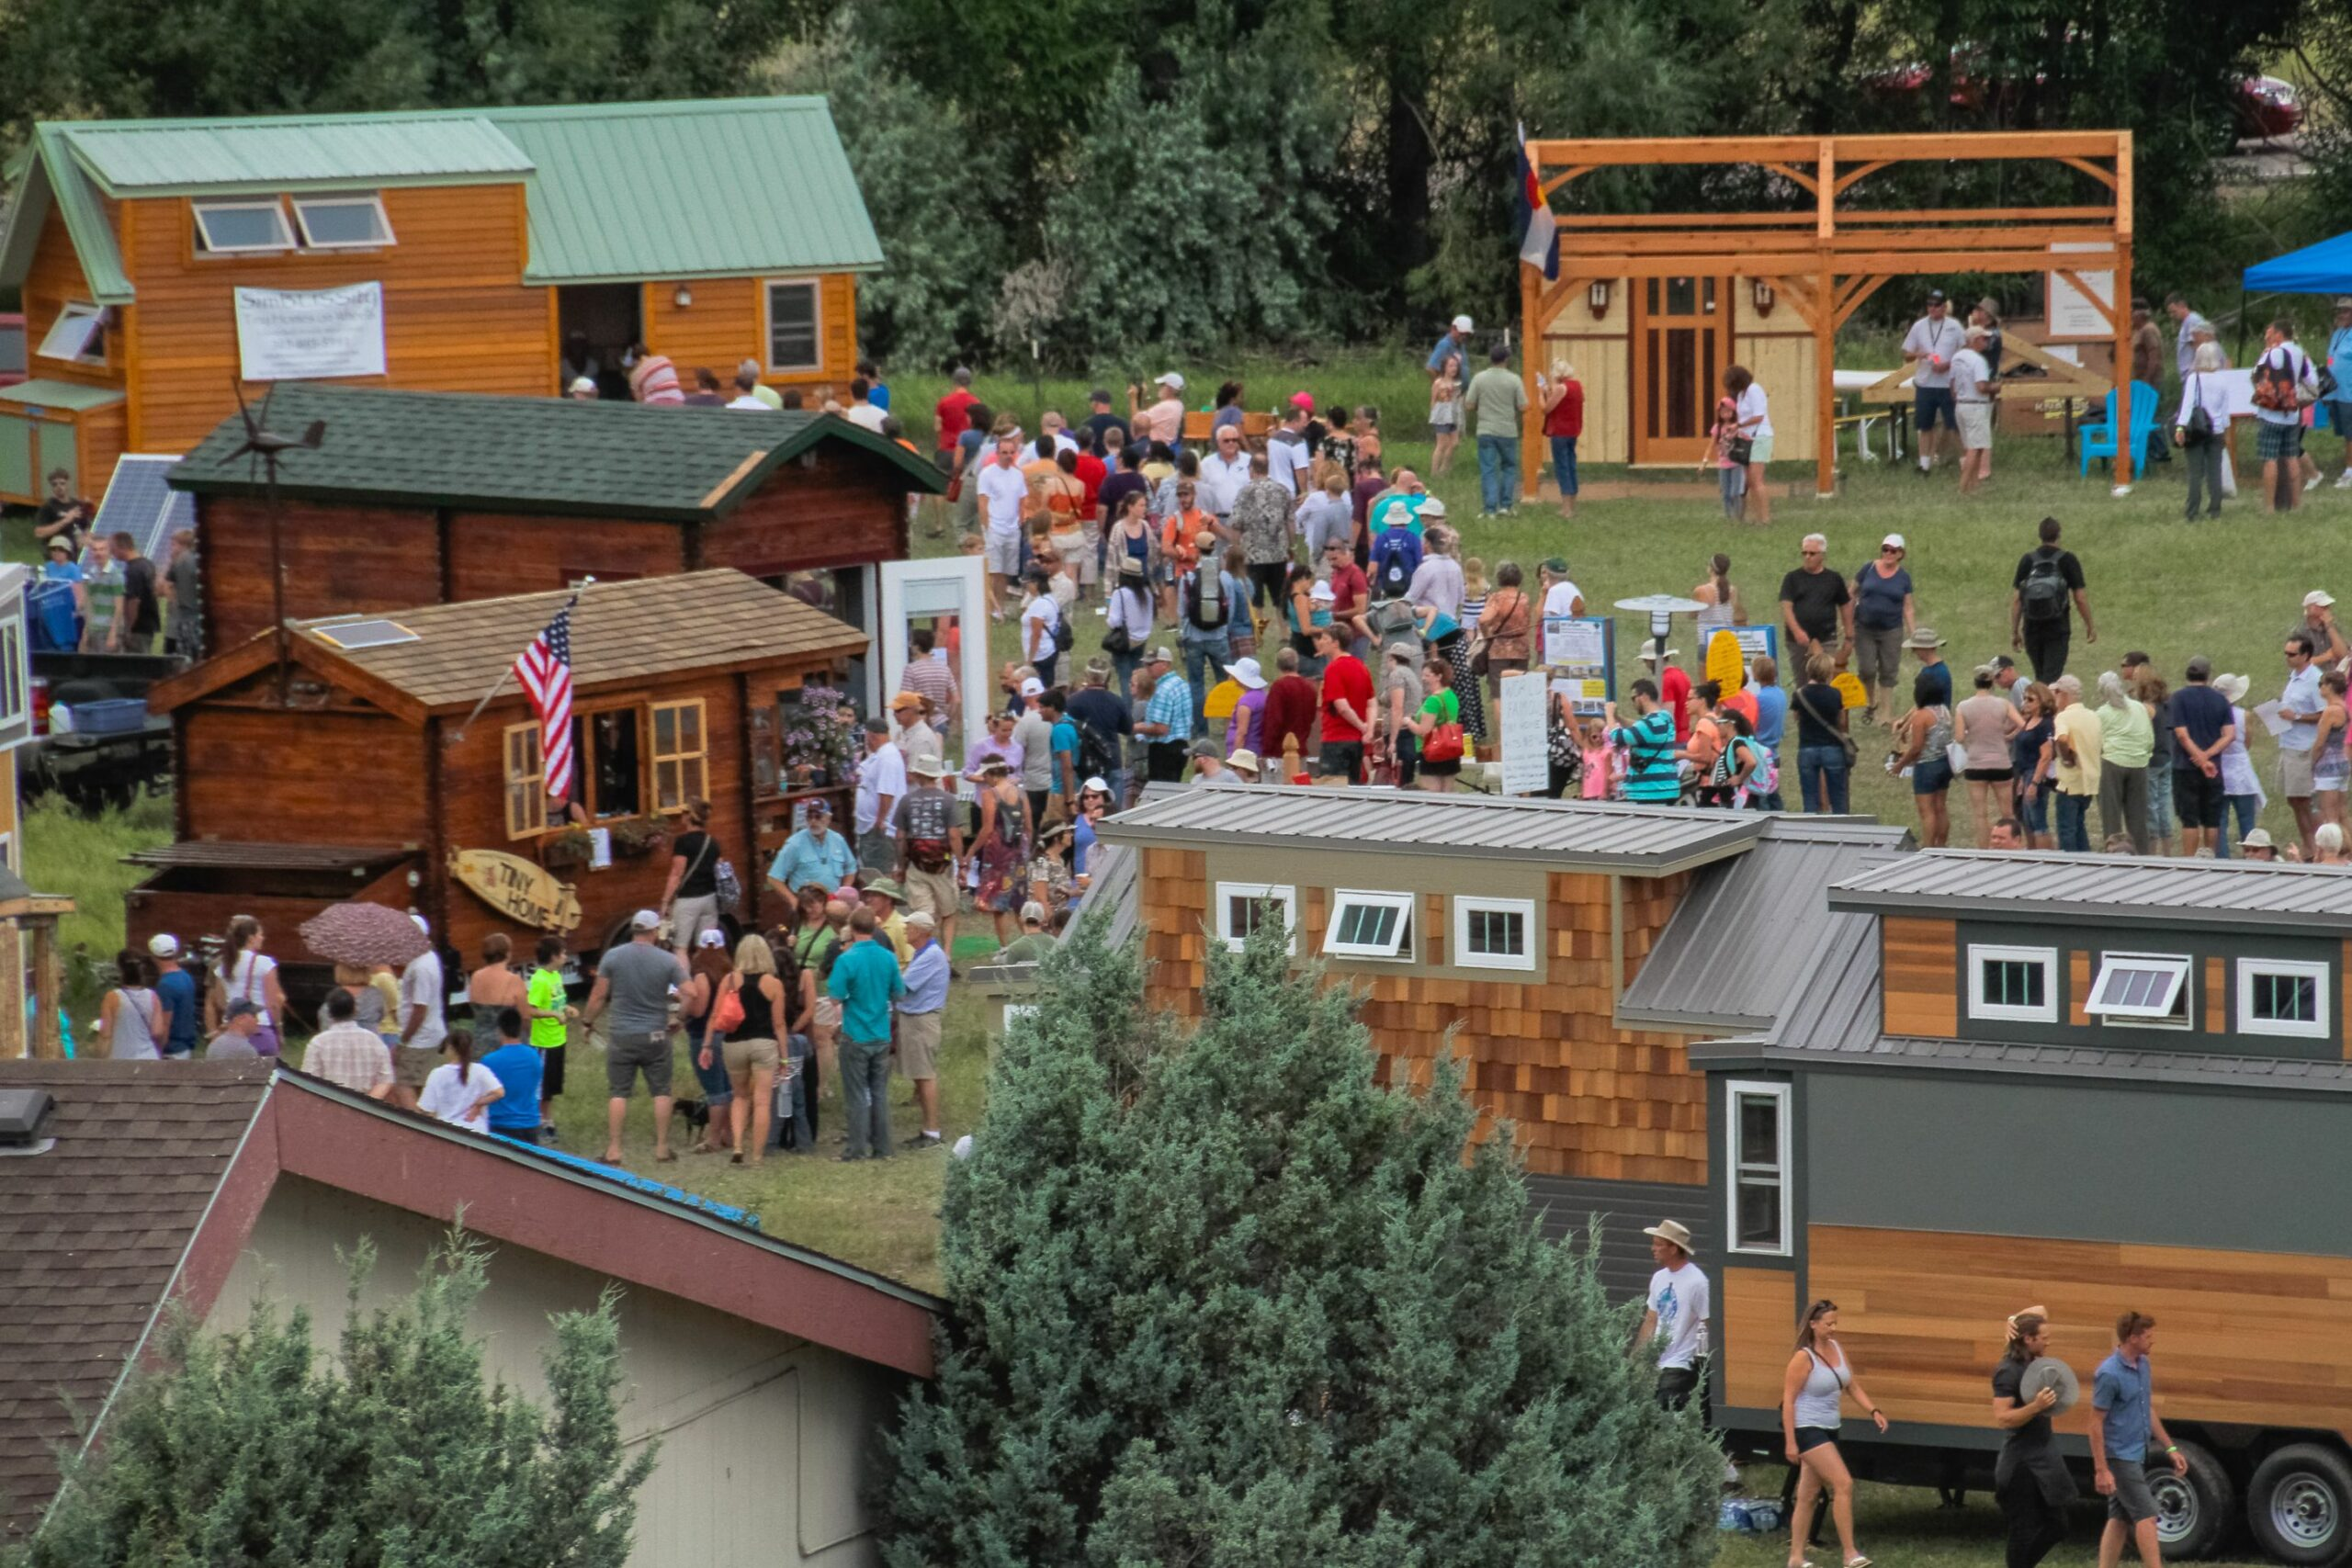 9 Reasons to Check Out Tiny House & Simple Living Jamboree 9 - tiny house jamboree 2020